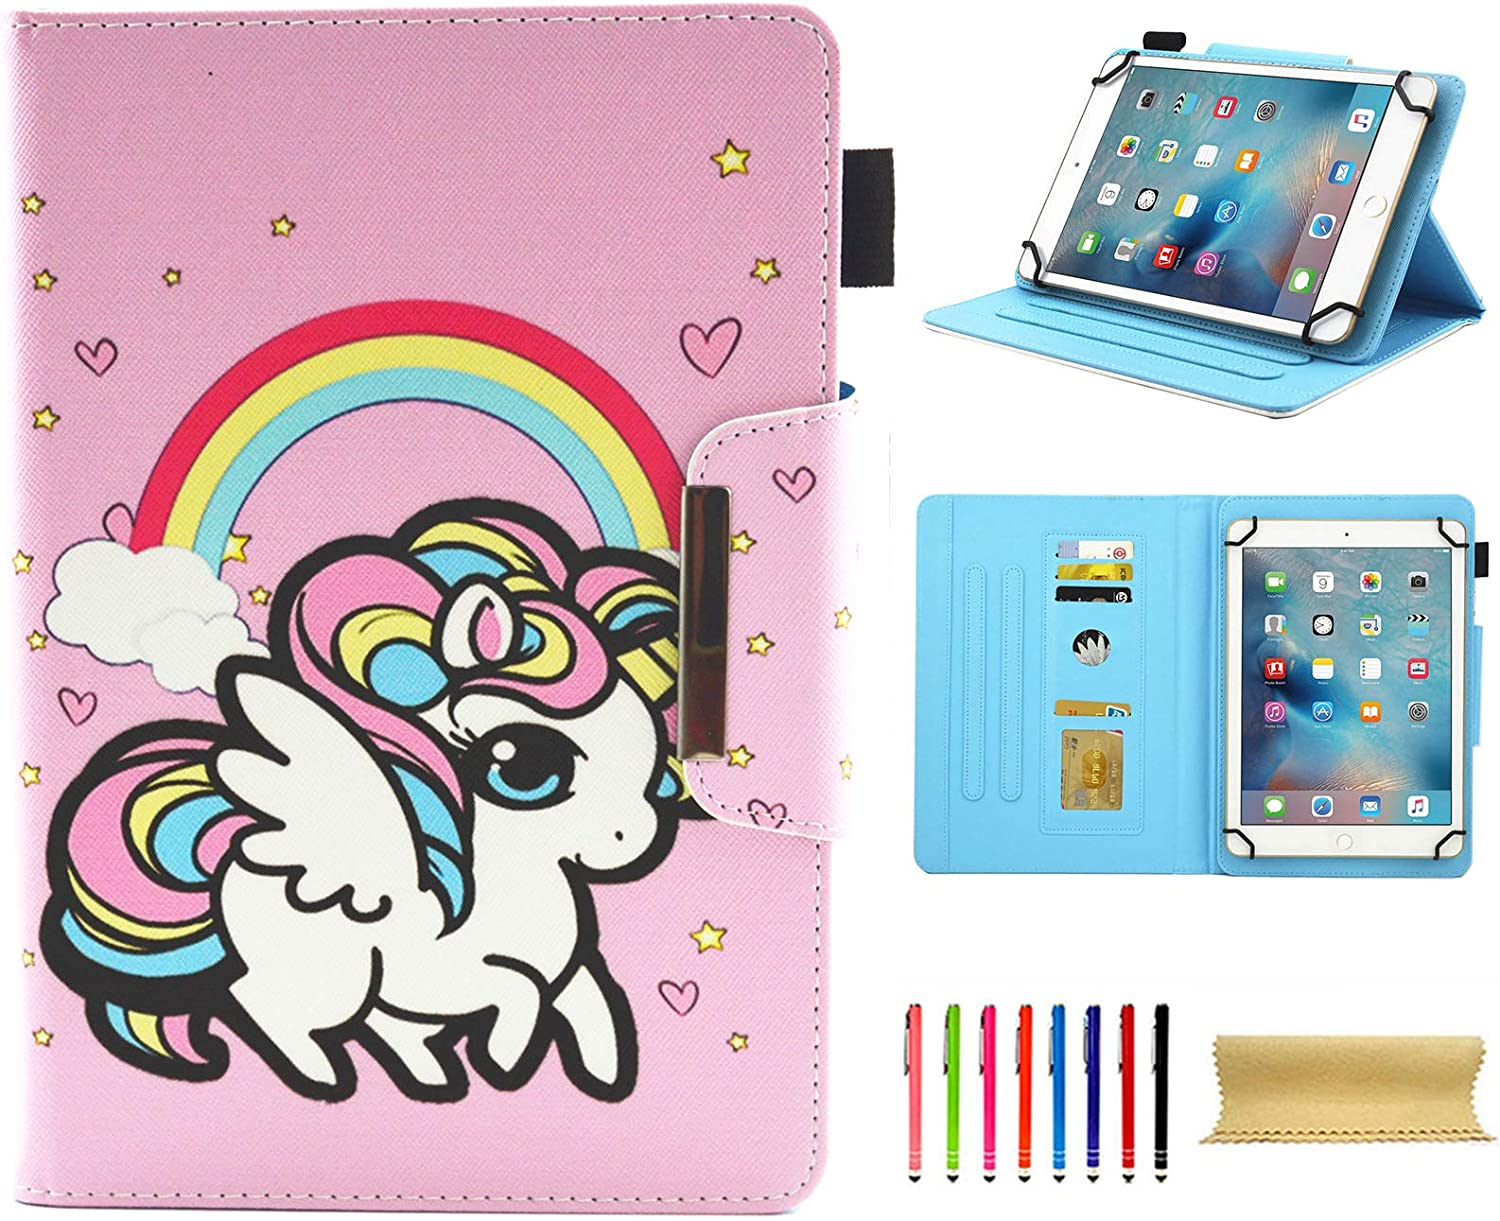 Universal Case for 7.0 Inch Tablet, Techcircle Slim PU Leather Stand Folio Wallet Case for Samsung Galaxy Tab E Lite, Acer Iconia One 7, Google/RCA and More 7-inch Android Tablet, Rainbow Unicorn